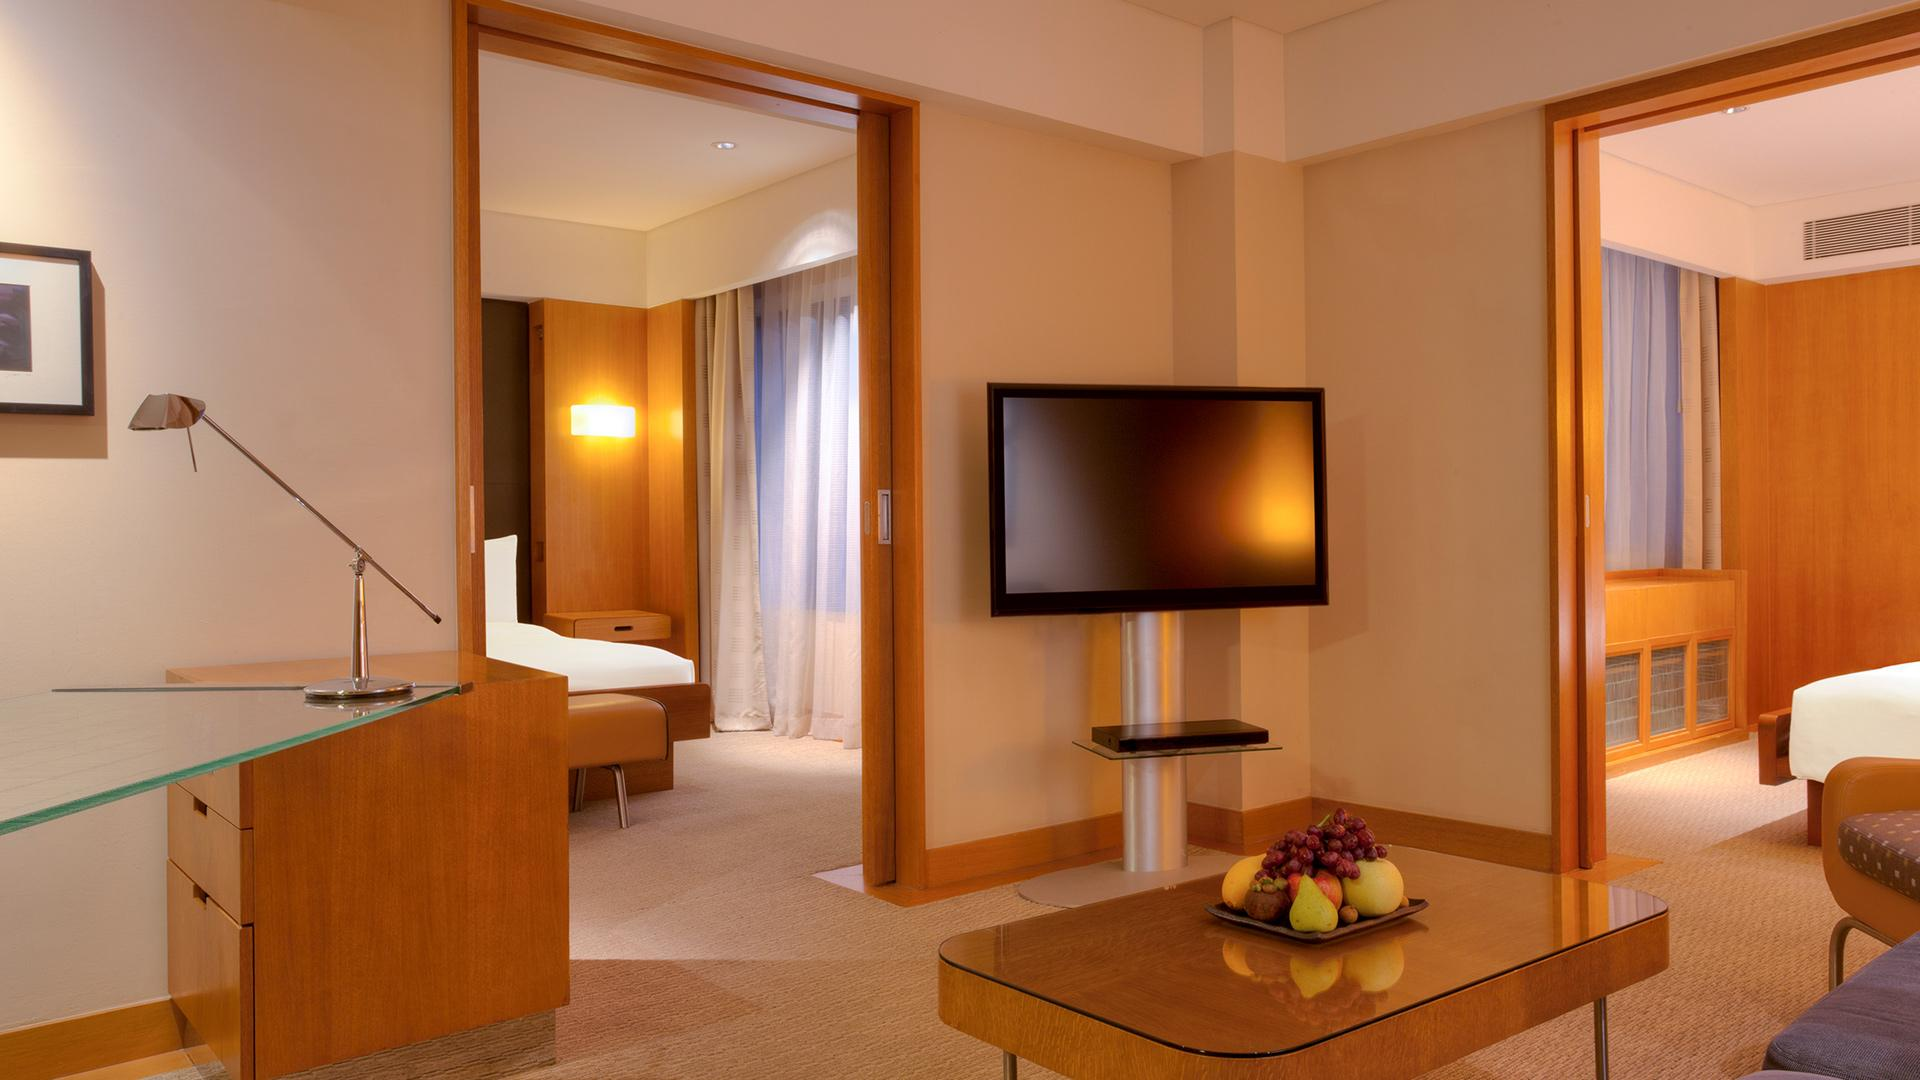 Grand Deluxe Two Bedroom image 1 at Grand Hyatt Singapore by null, null, Singapore